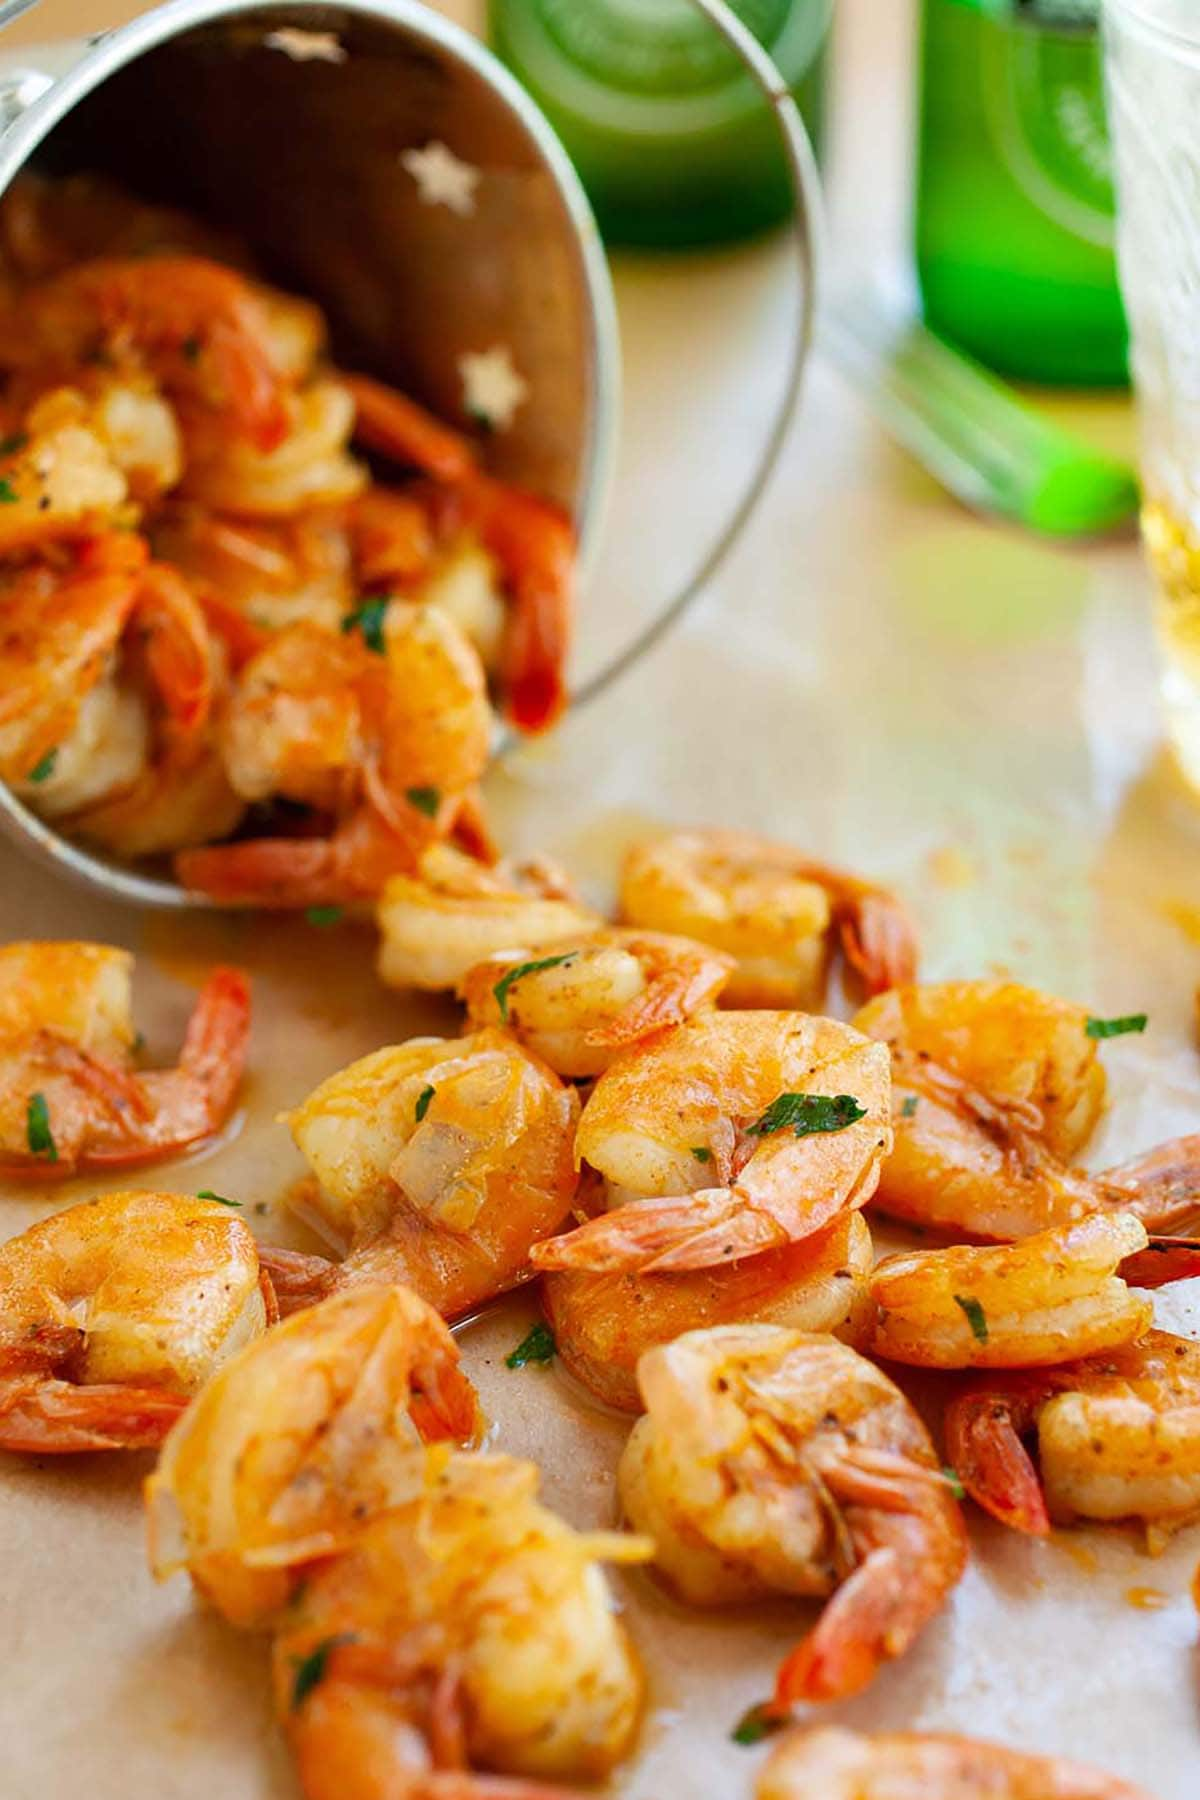 Easy and quick peel and eat shrimps sauteed with butter, beer and spices.